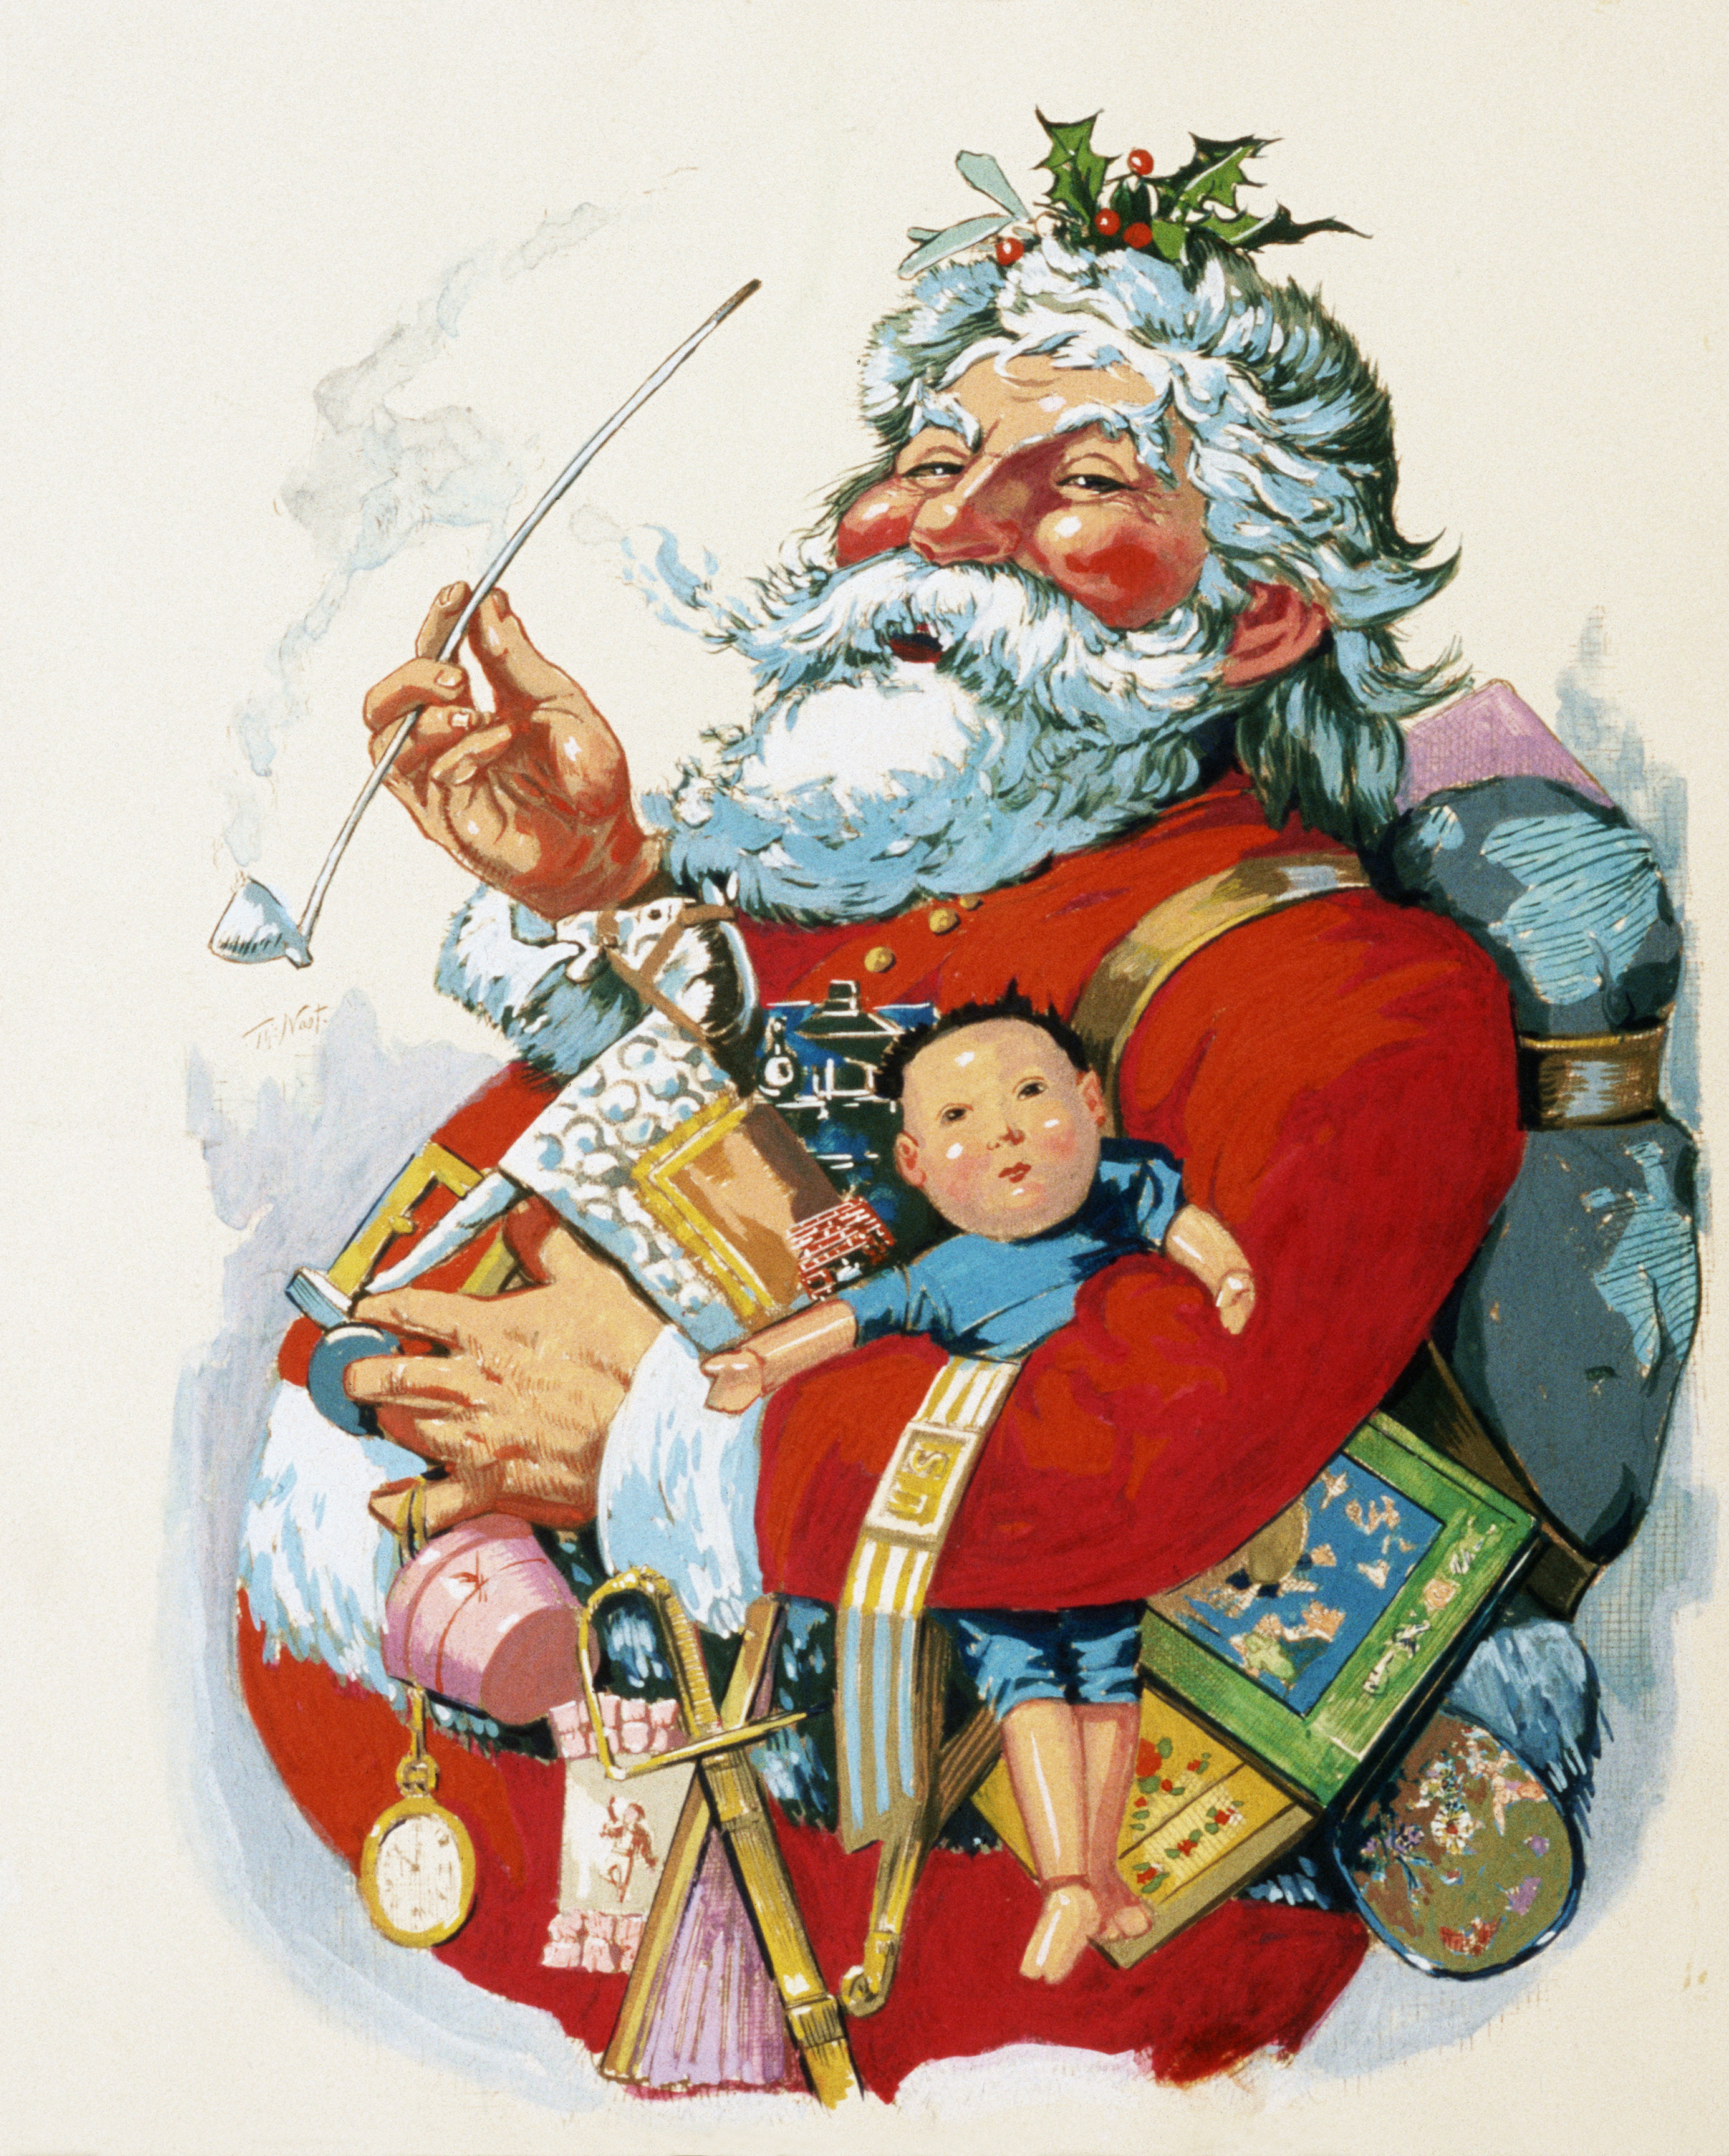 St. Nicholas Day Germany >> by-thomas-nast-3 - History of Santa Claus Pictures - History of Christmas - HISTORY.com